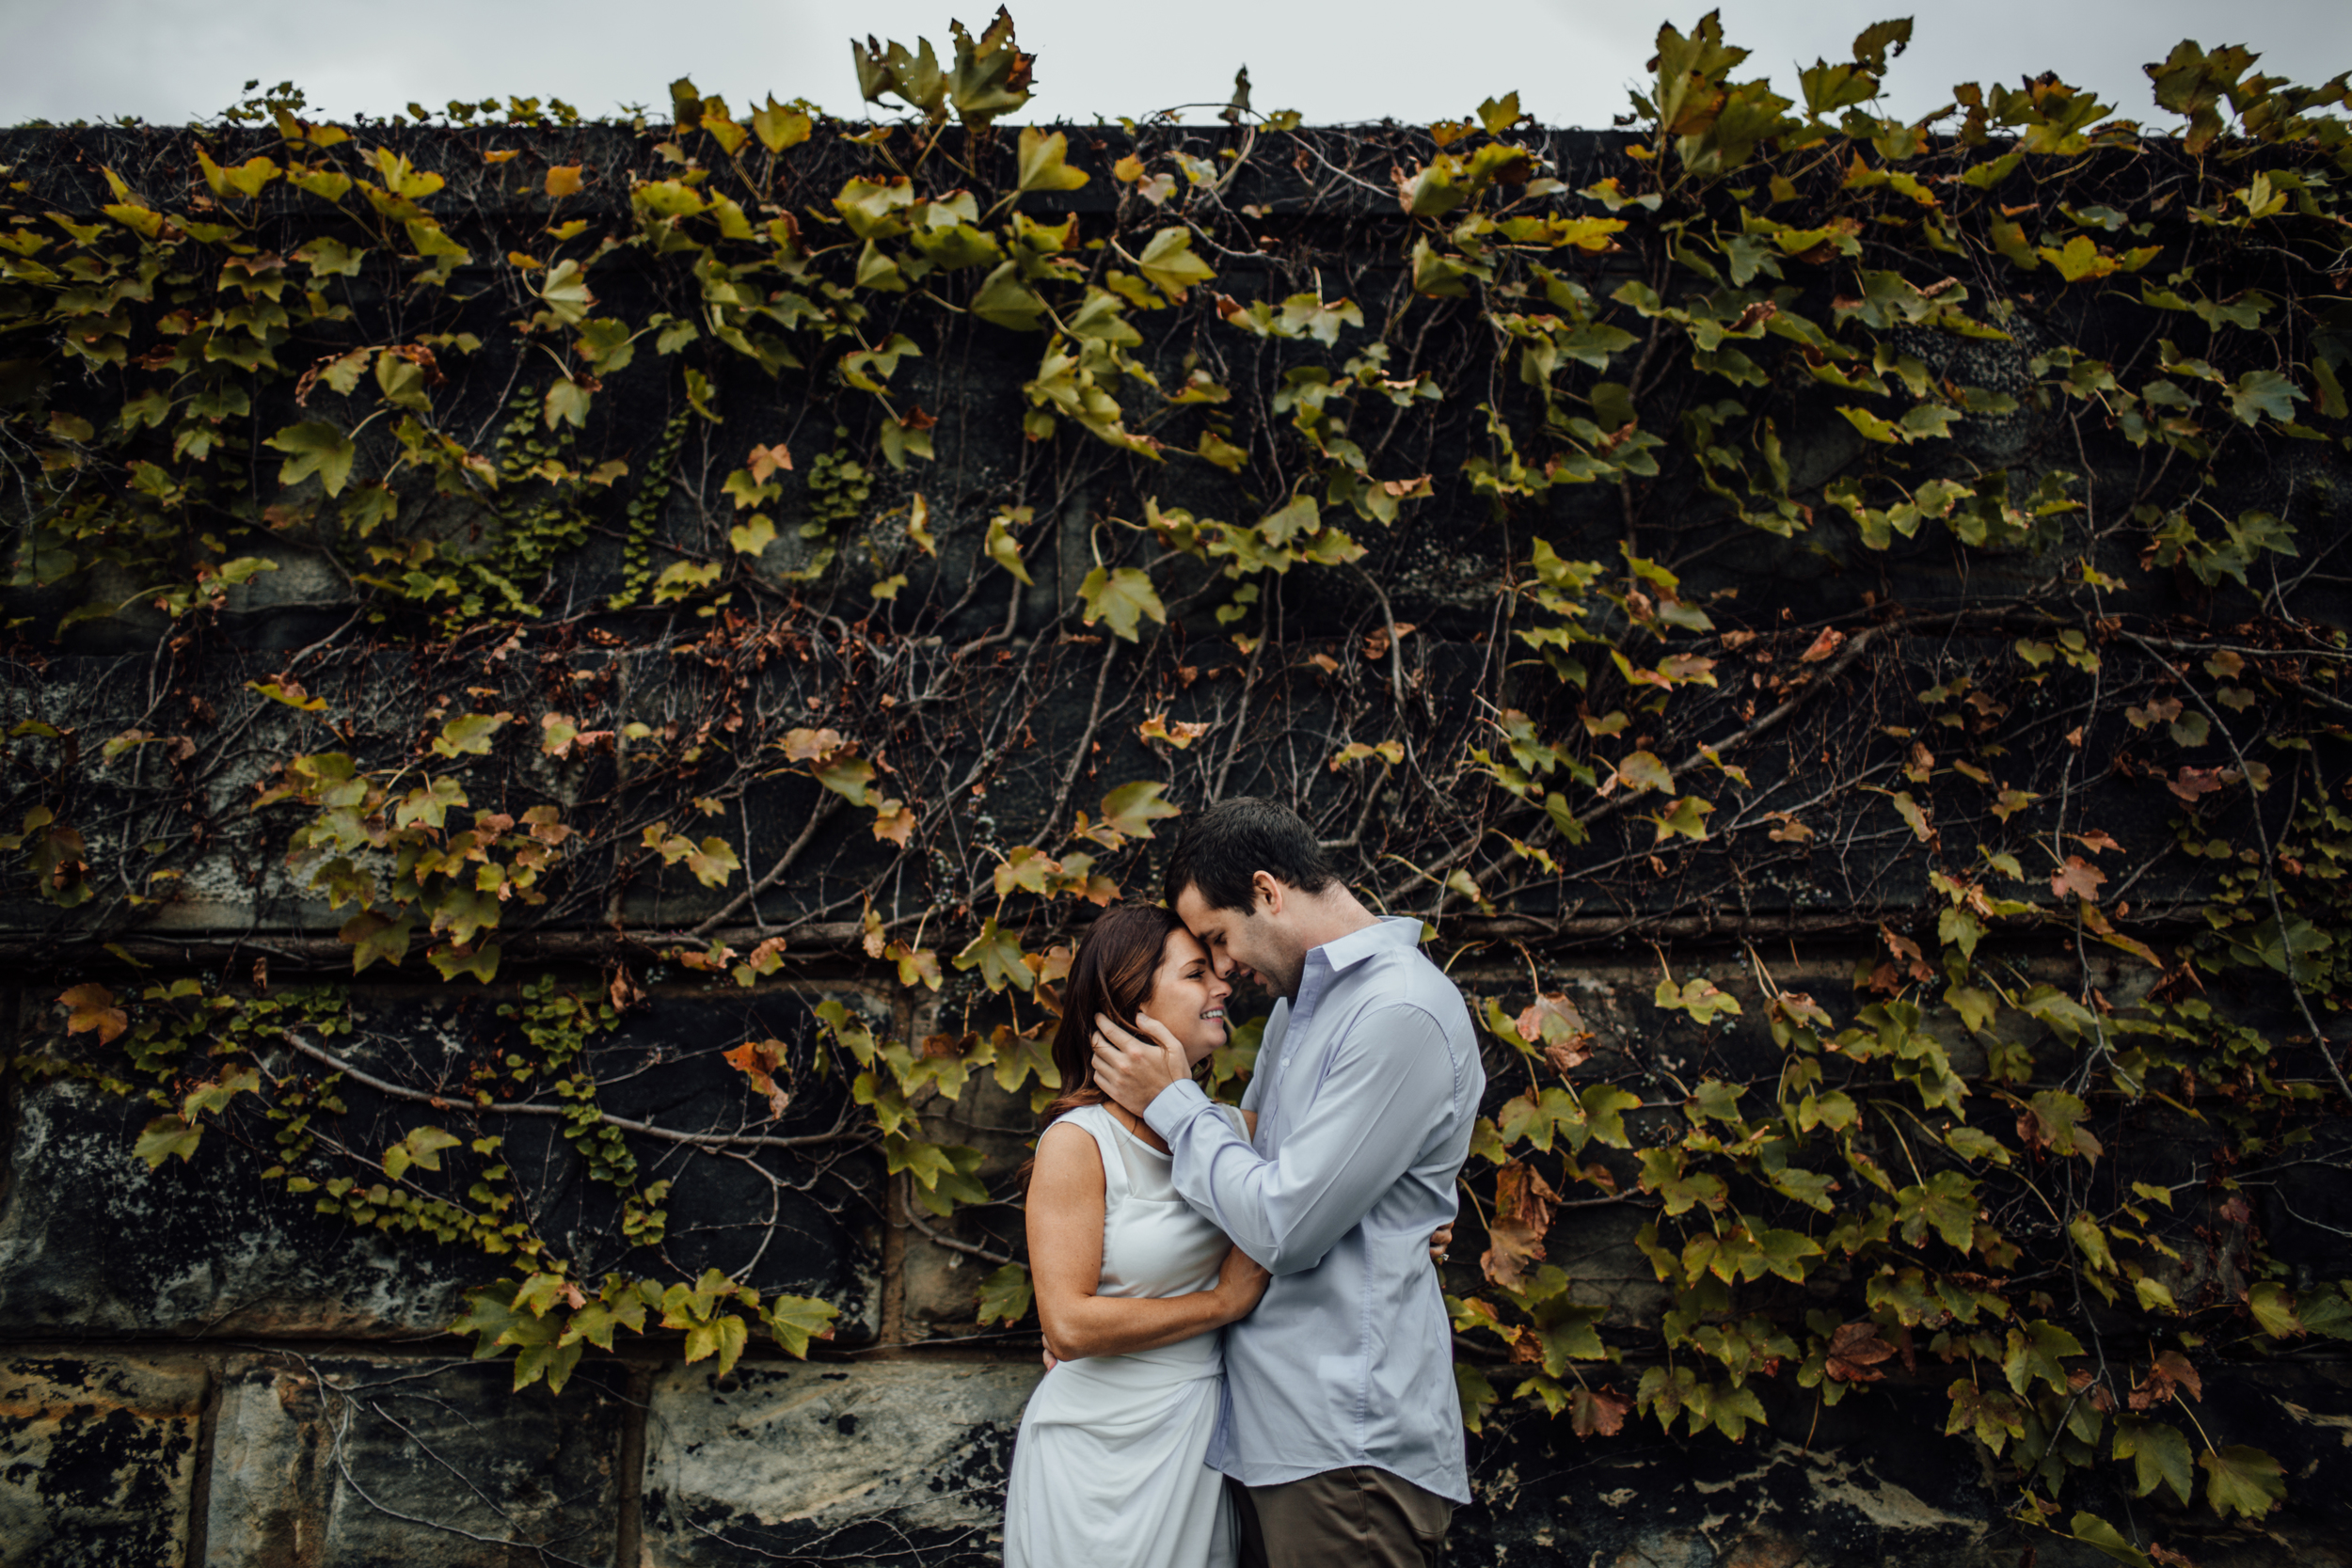 BRITTANYandKEVIN-Engagement2015 (71 of 115).jpg